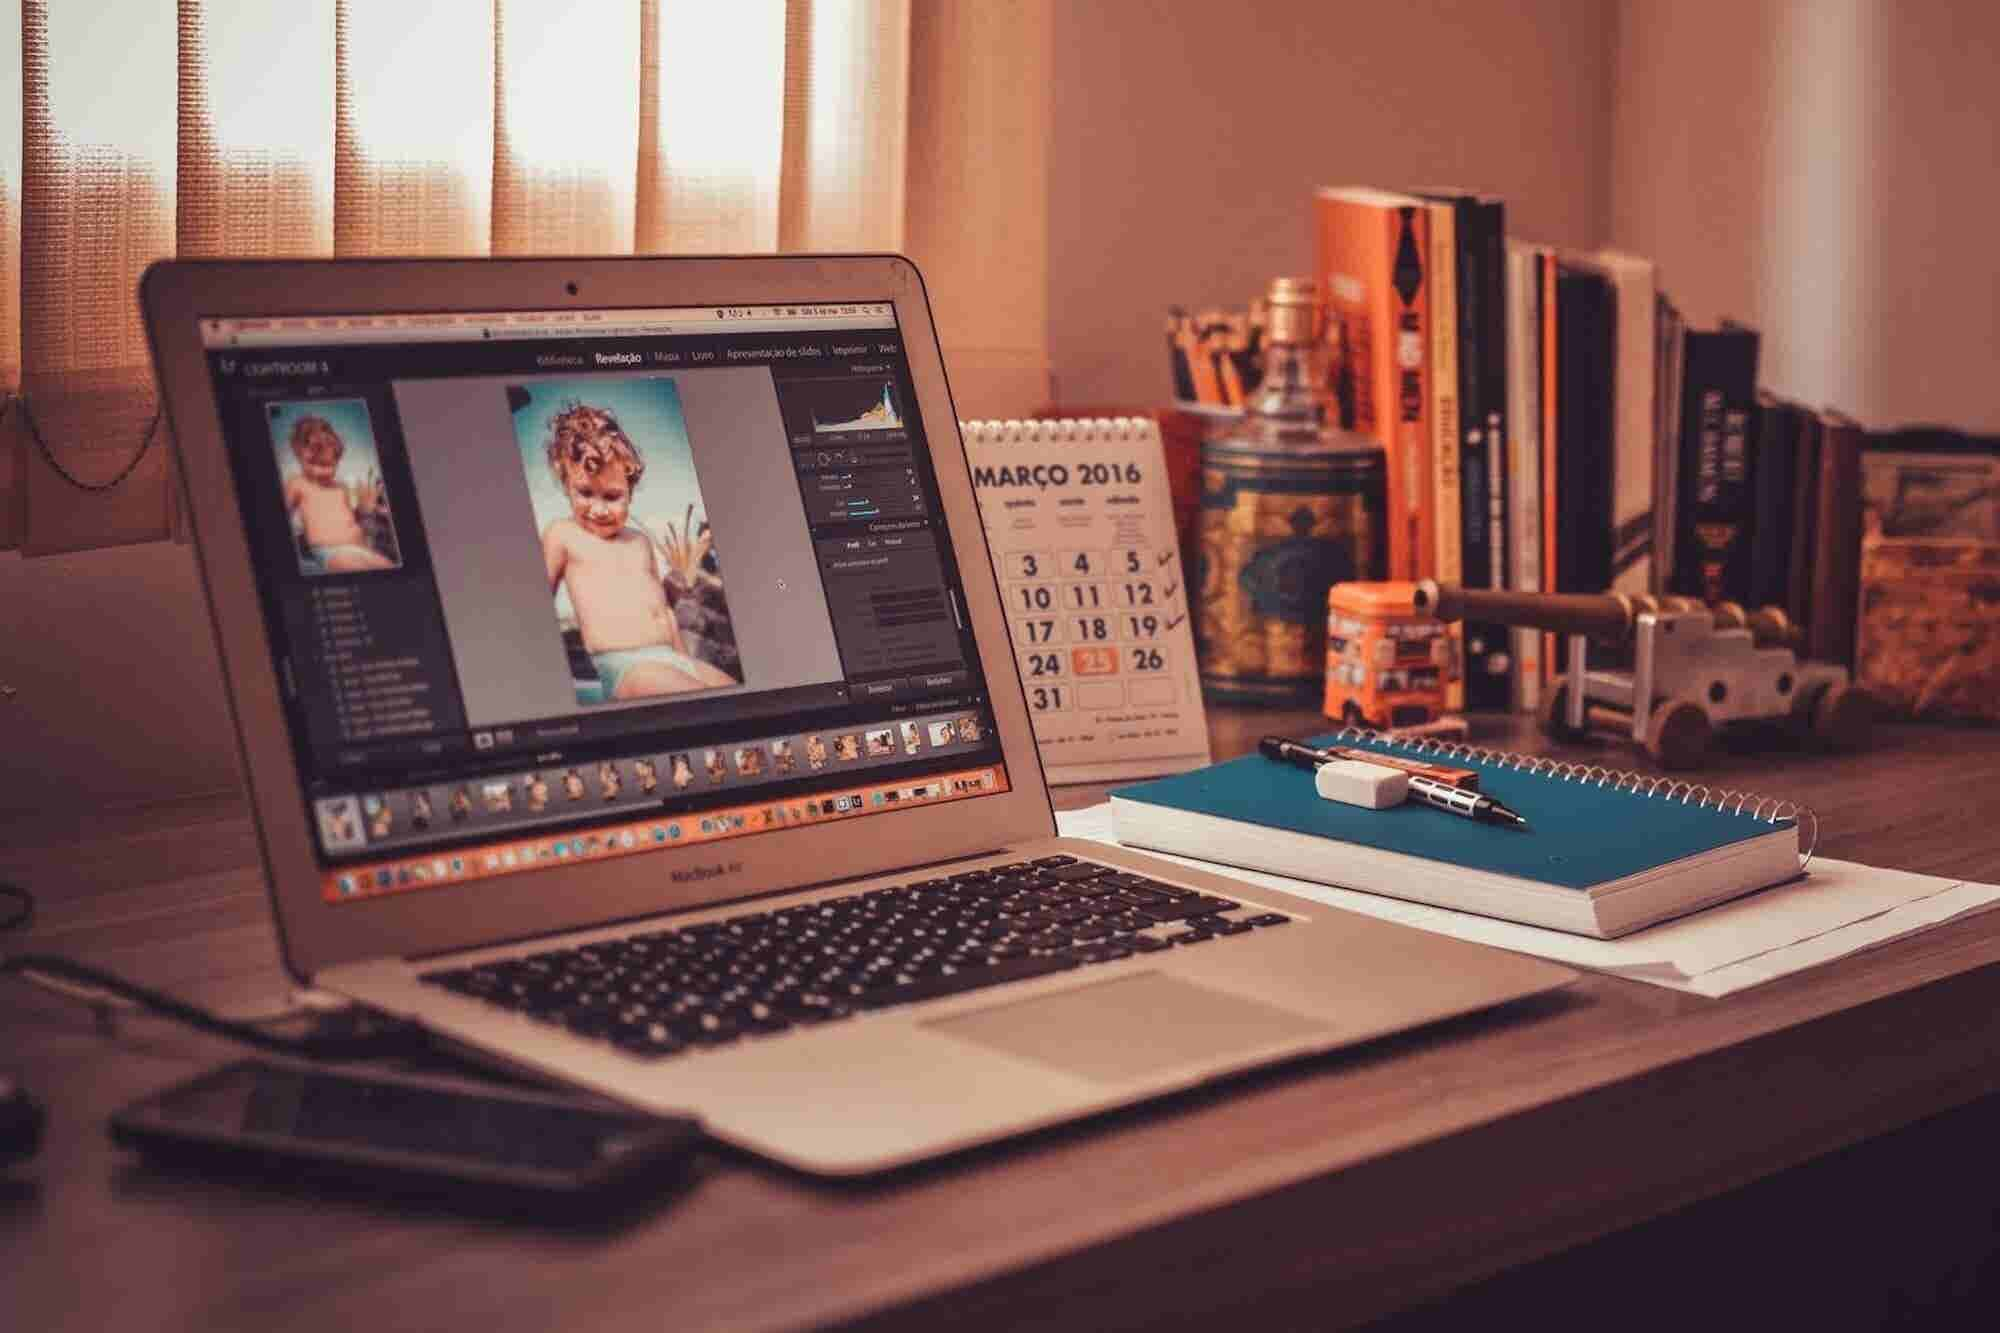 Learn Popular Adobe Apps Like Photoshop and Premiere Pro Online